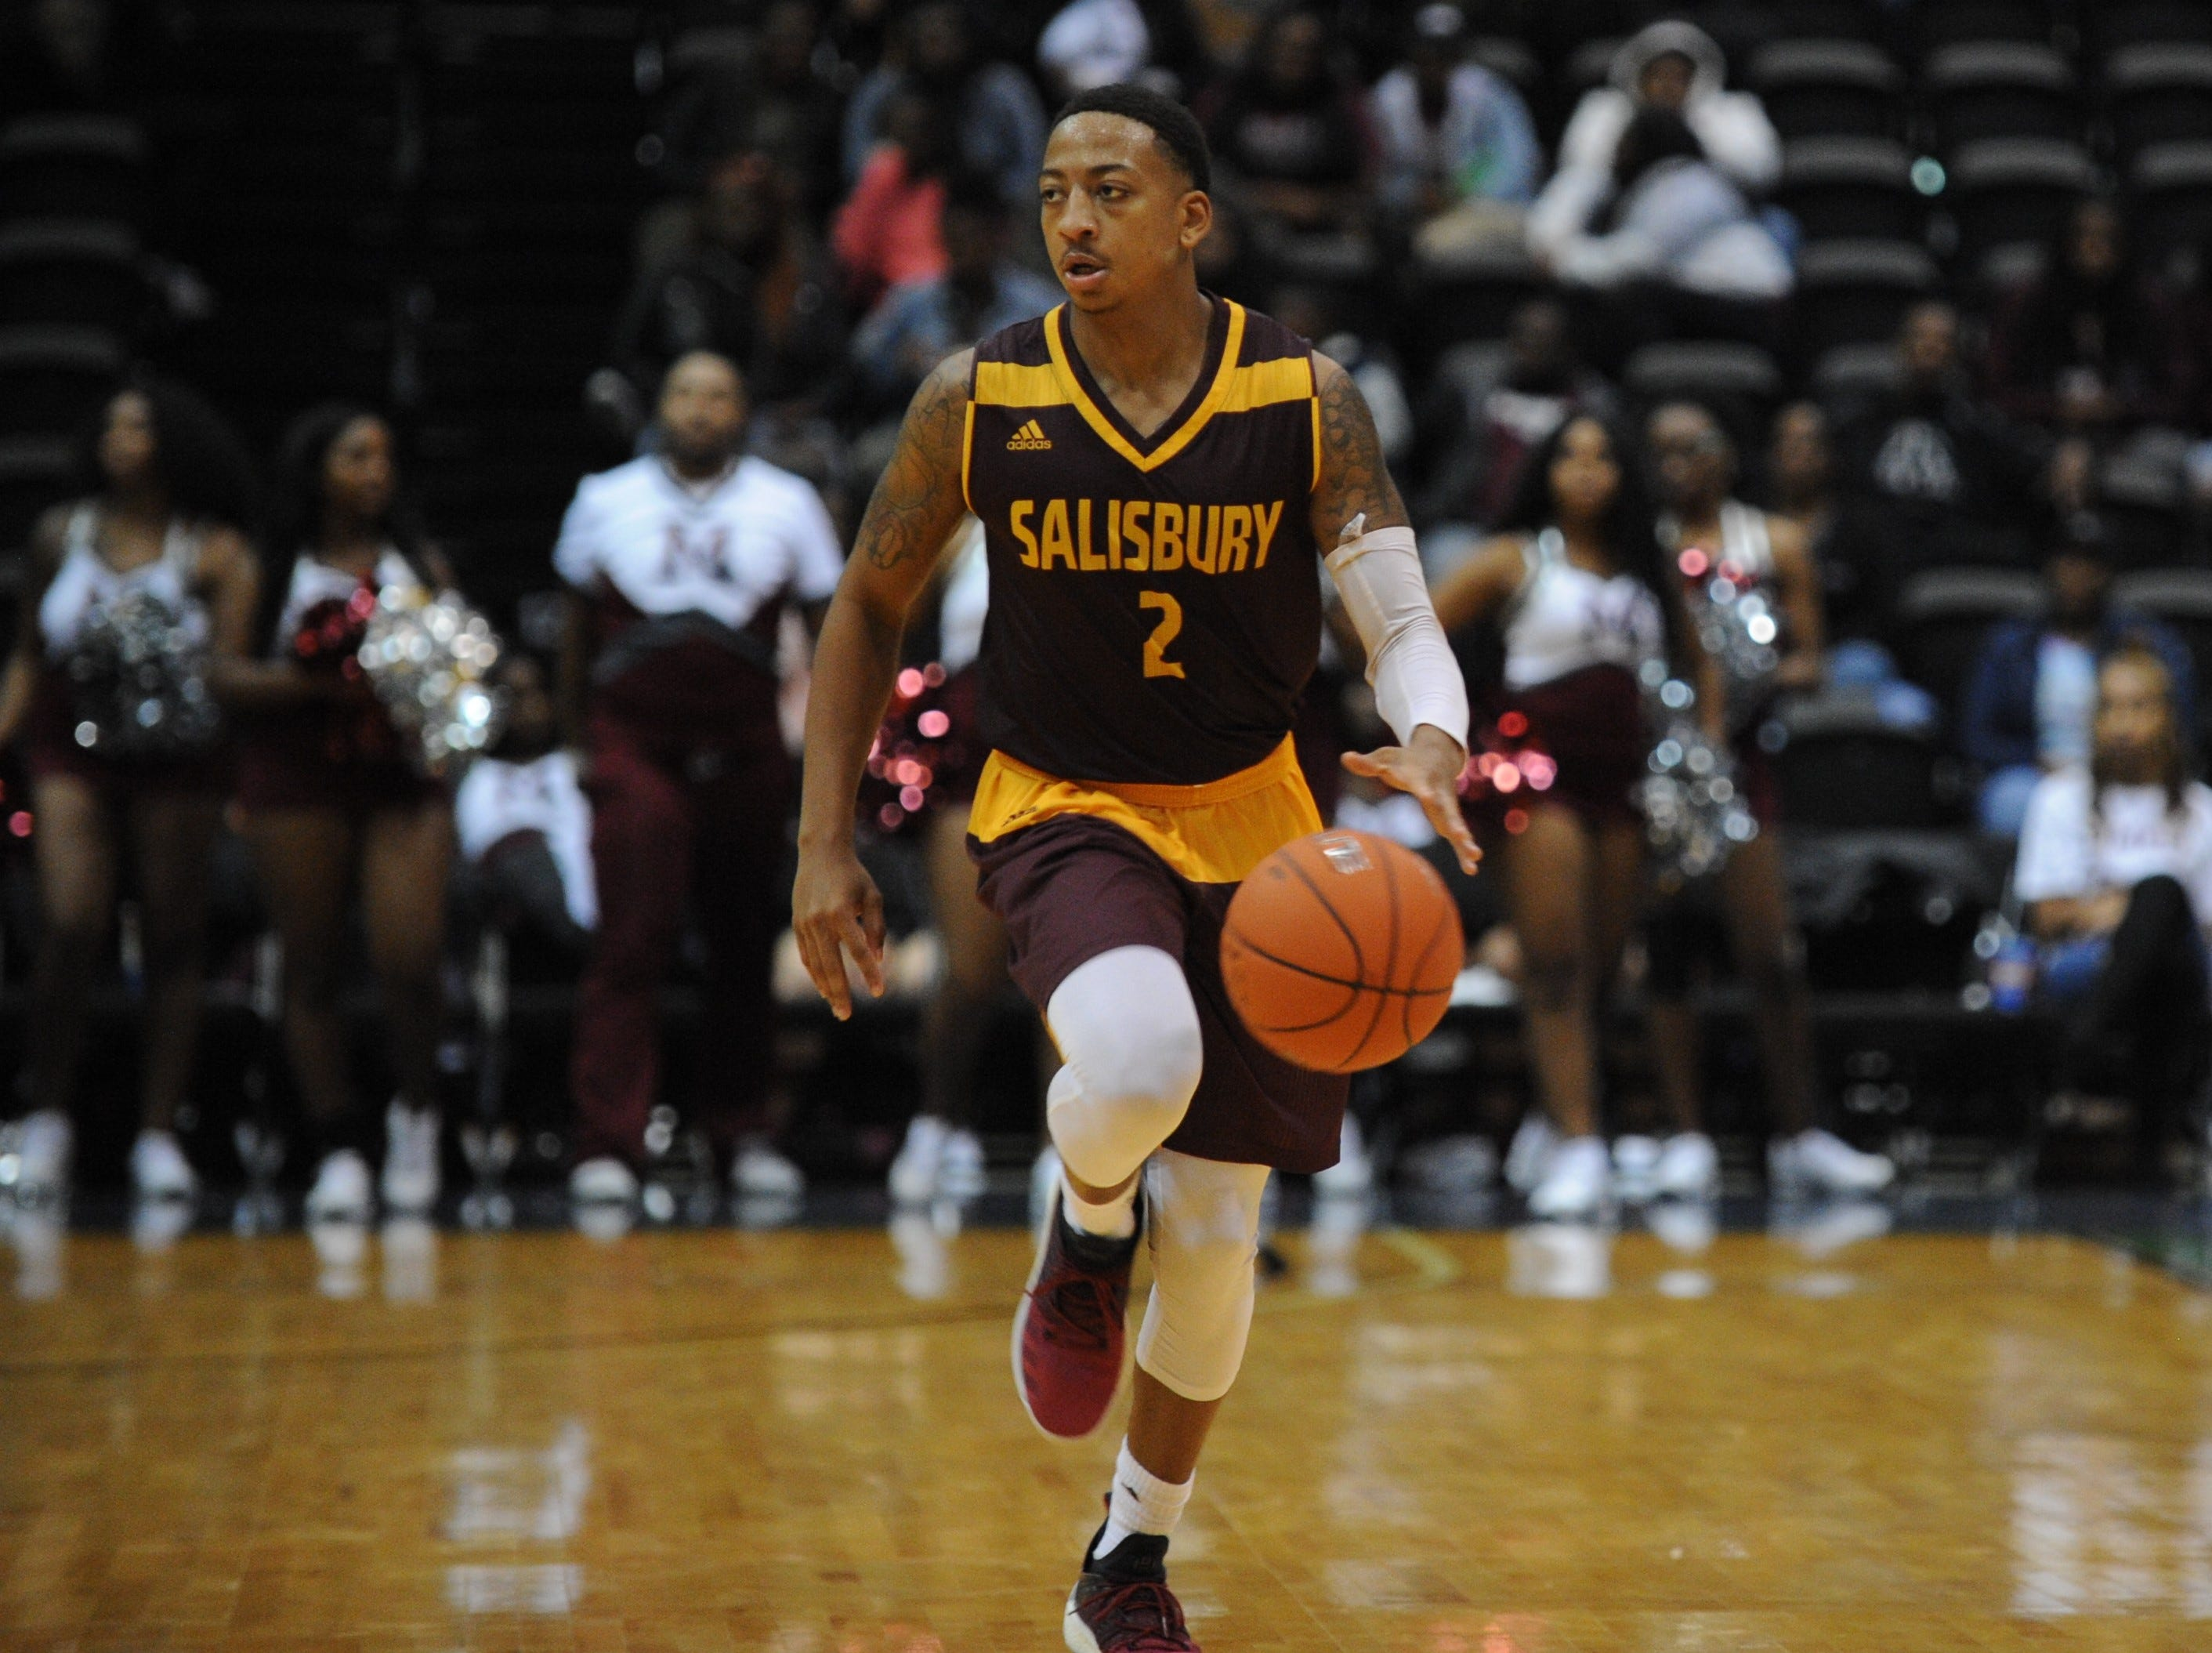 Salisbury University guard Blair Davis takes the ball up court against the University of Maryland Eastern Shore during the 10-Mile Tipoff on Thursday, Nov. 1, 2018. The Sea Gulls won, 67-60.